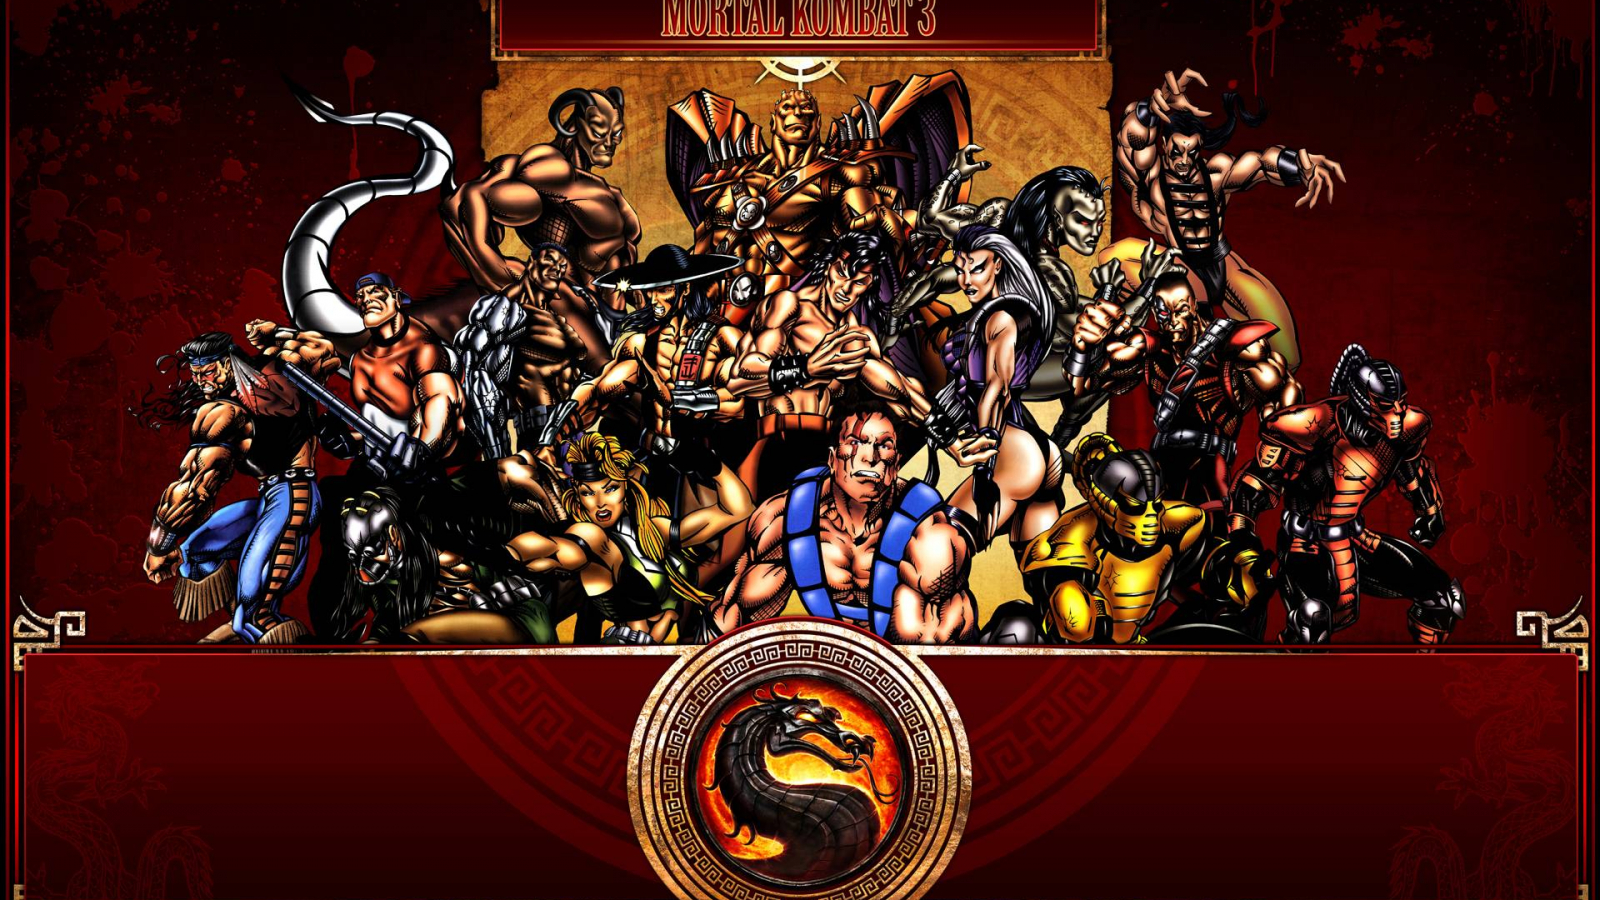 Free Download Mortal Kombat Characters Wallpapers 1920x1200 For